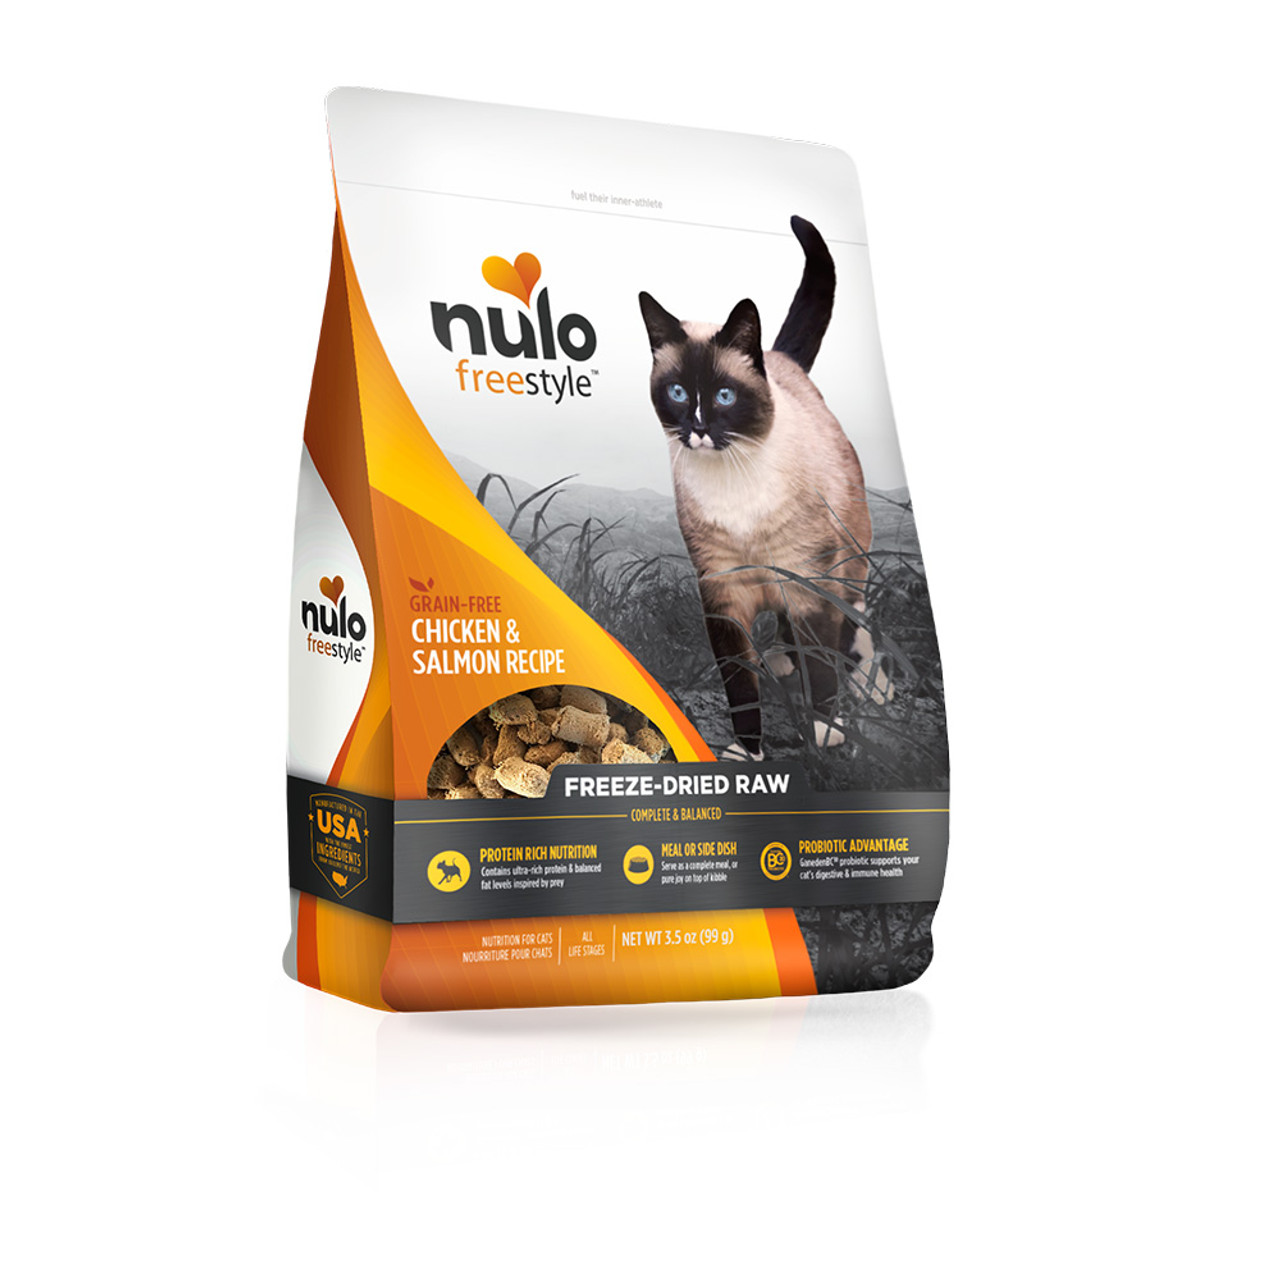 Nulo Freestyle Chicken & Salmon Recipe Freeze-Dried Raw Cat Food